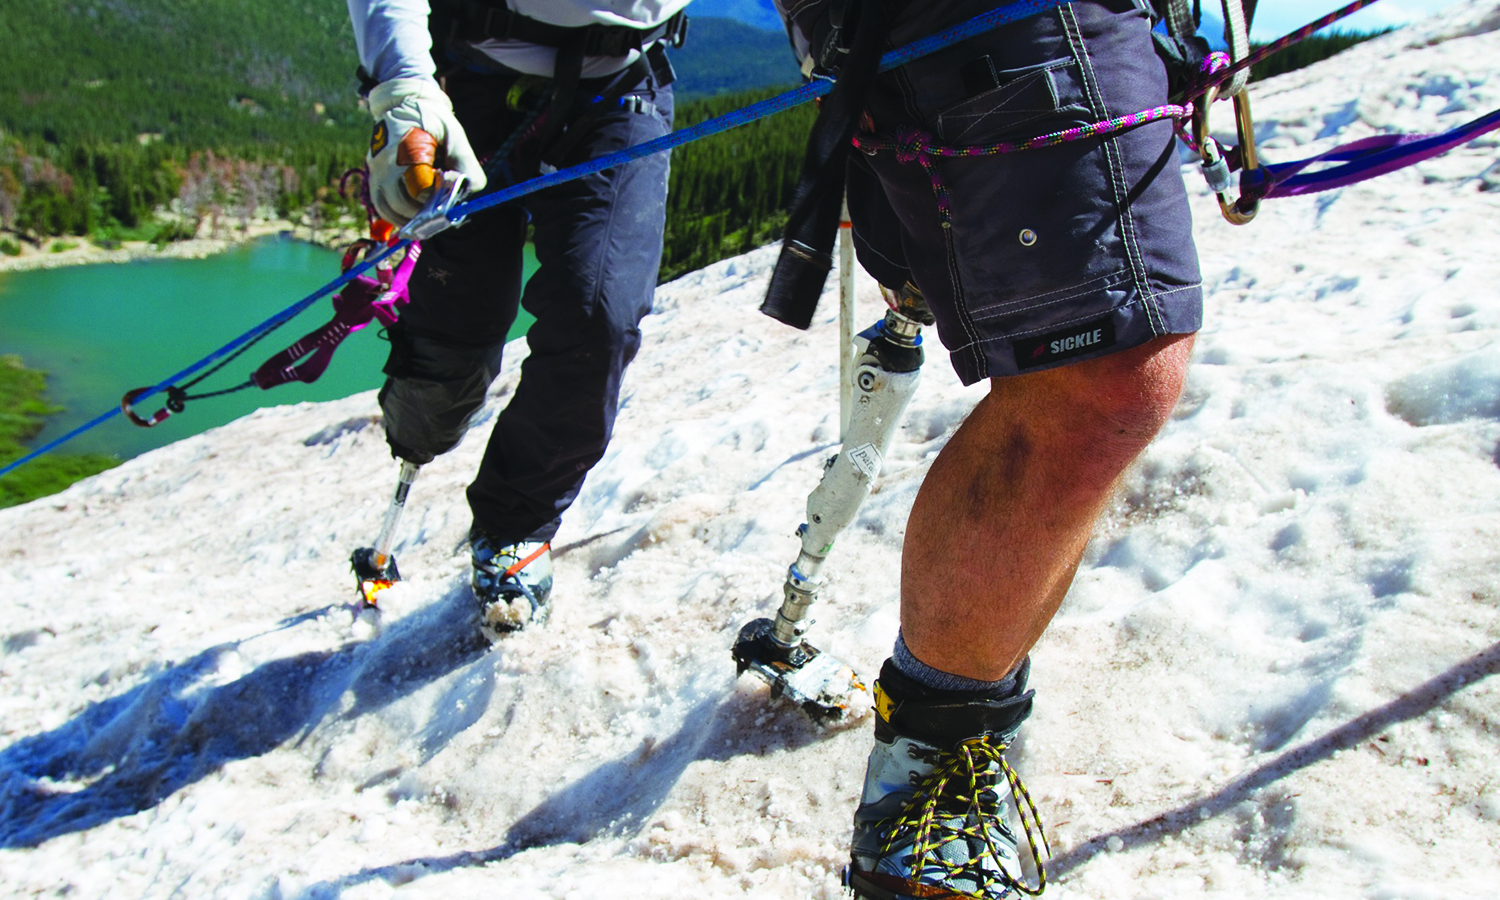 The Soldiers to the Summit team is made of up people with varying disabilities including amputees.